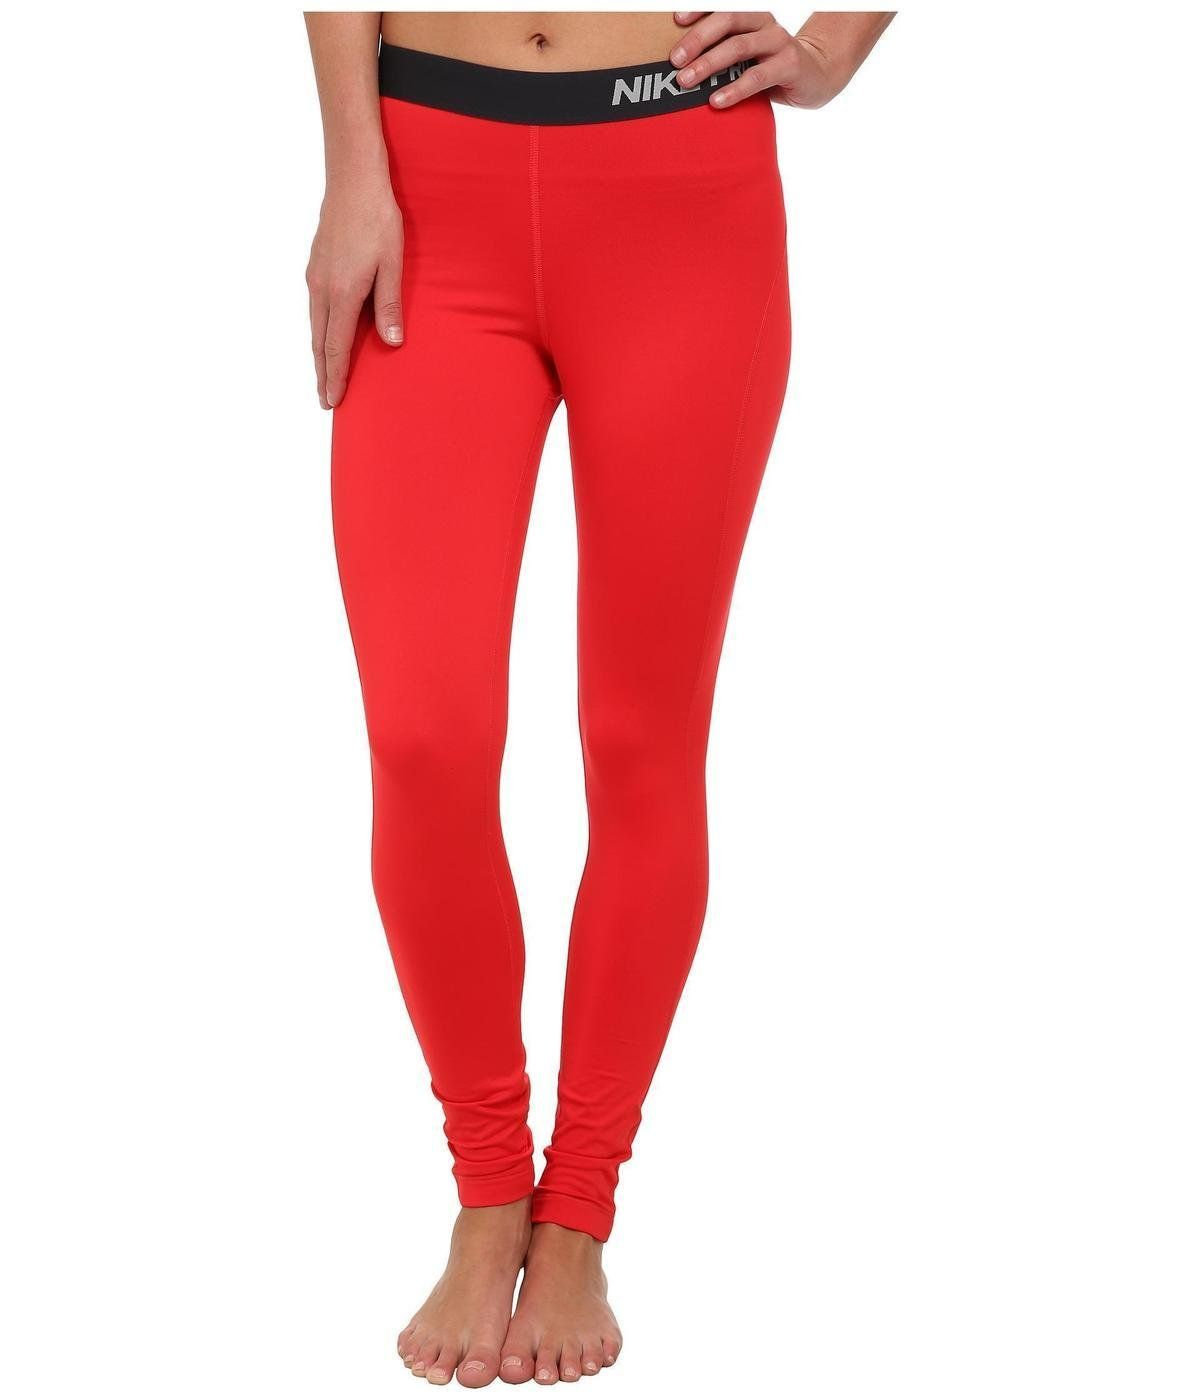 Shop Target for Legging pants Pants you will love at great low prices. Spend $35+ or use your REDcard & get free 2-day shipping on most items or same-day pick-up in store.